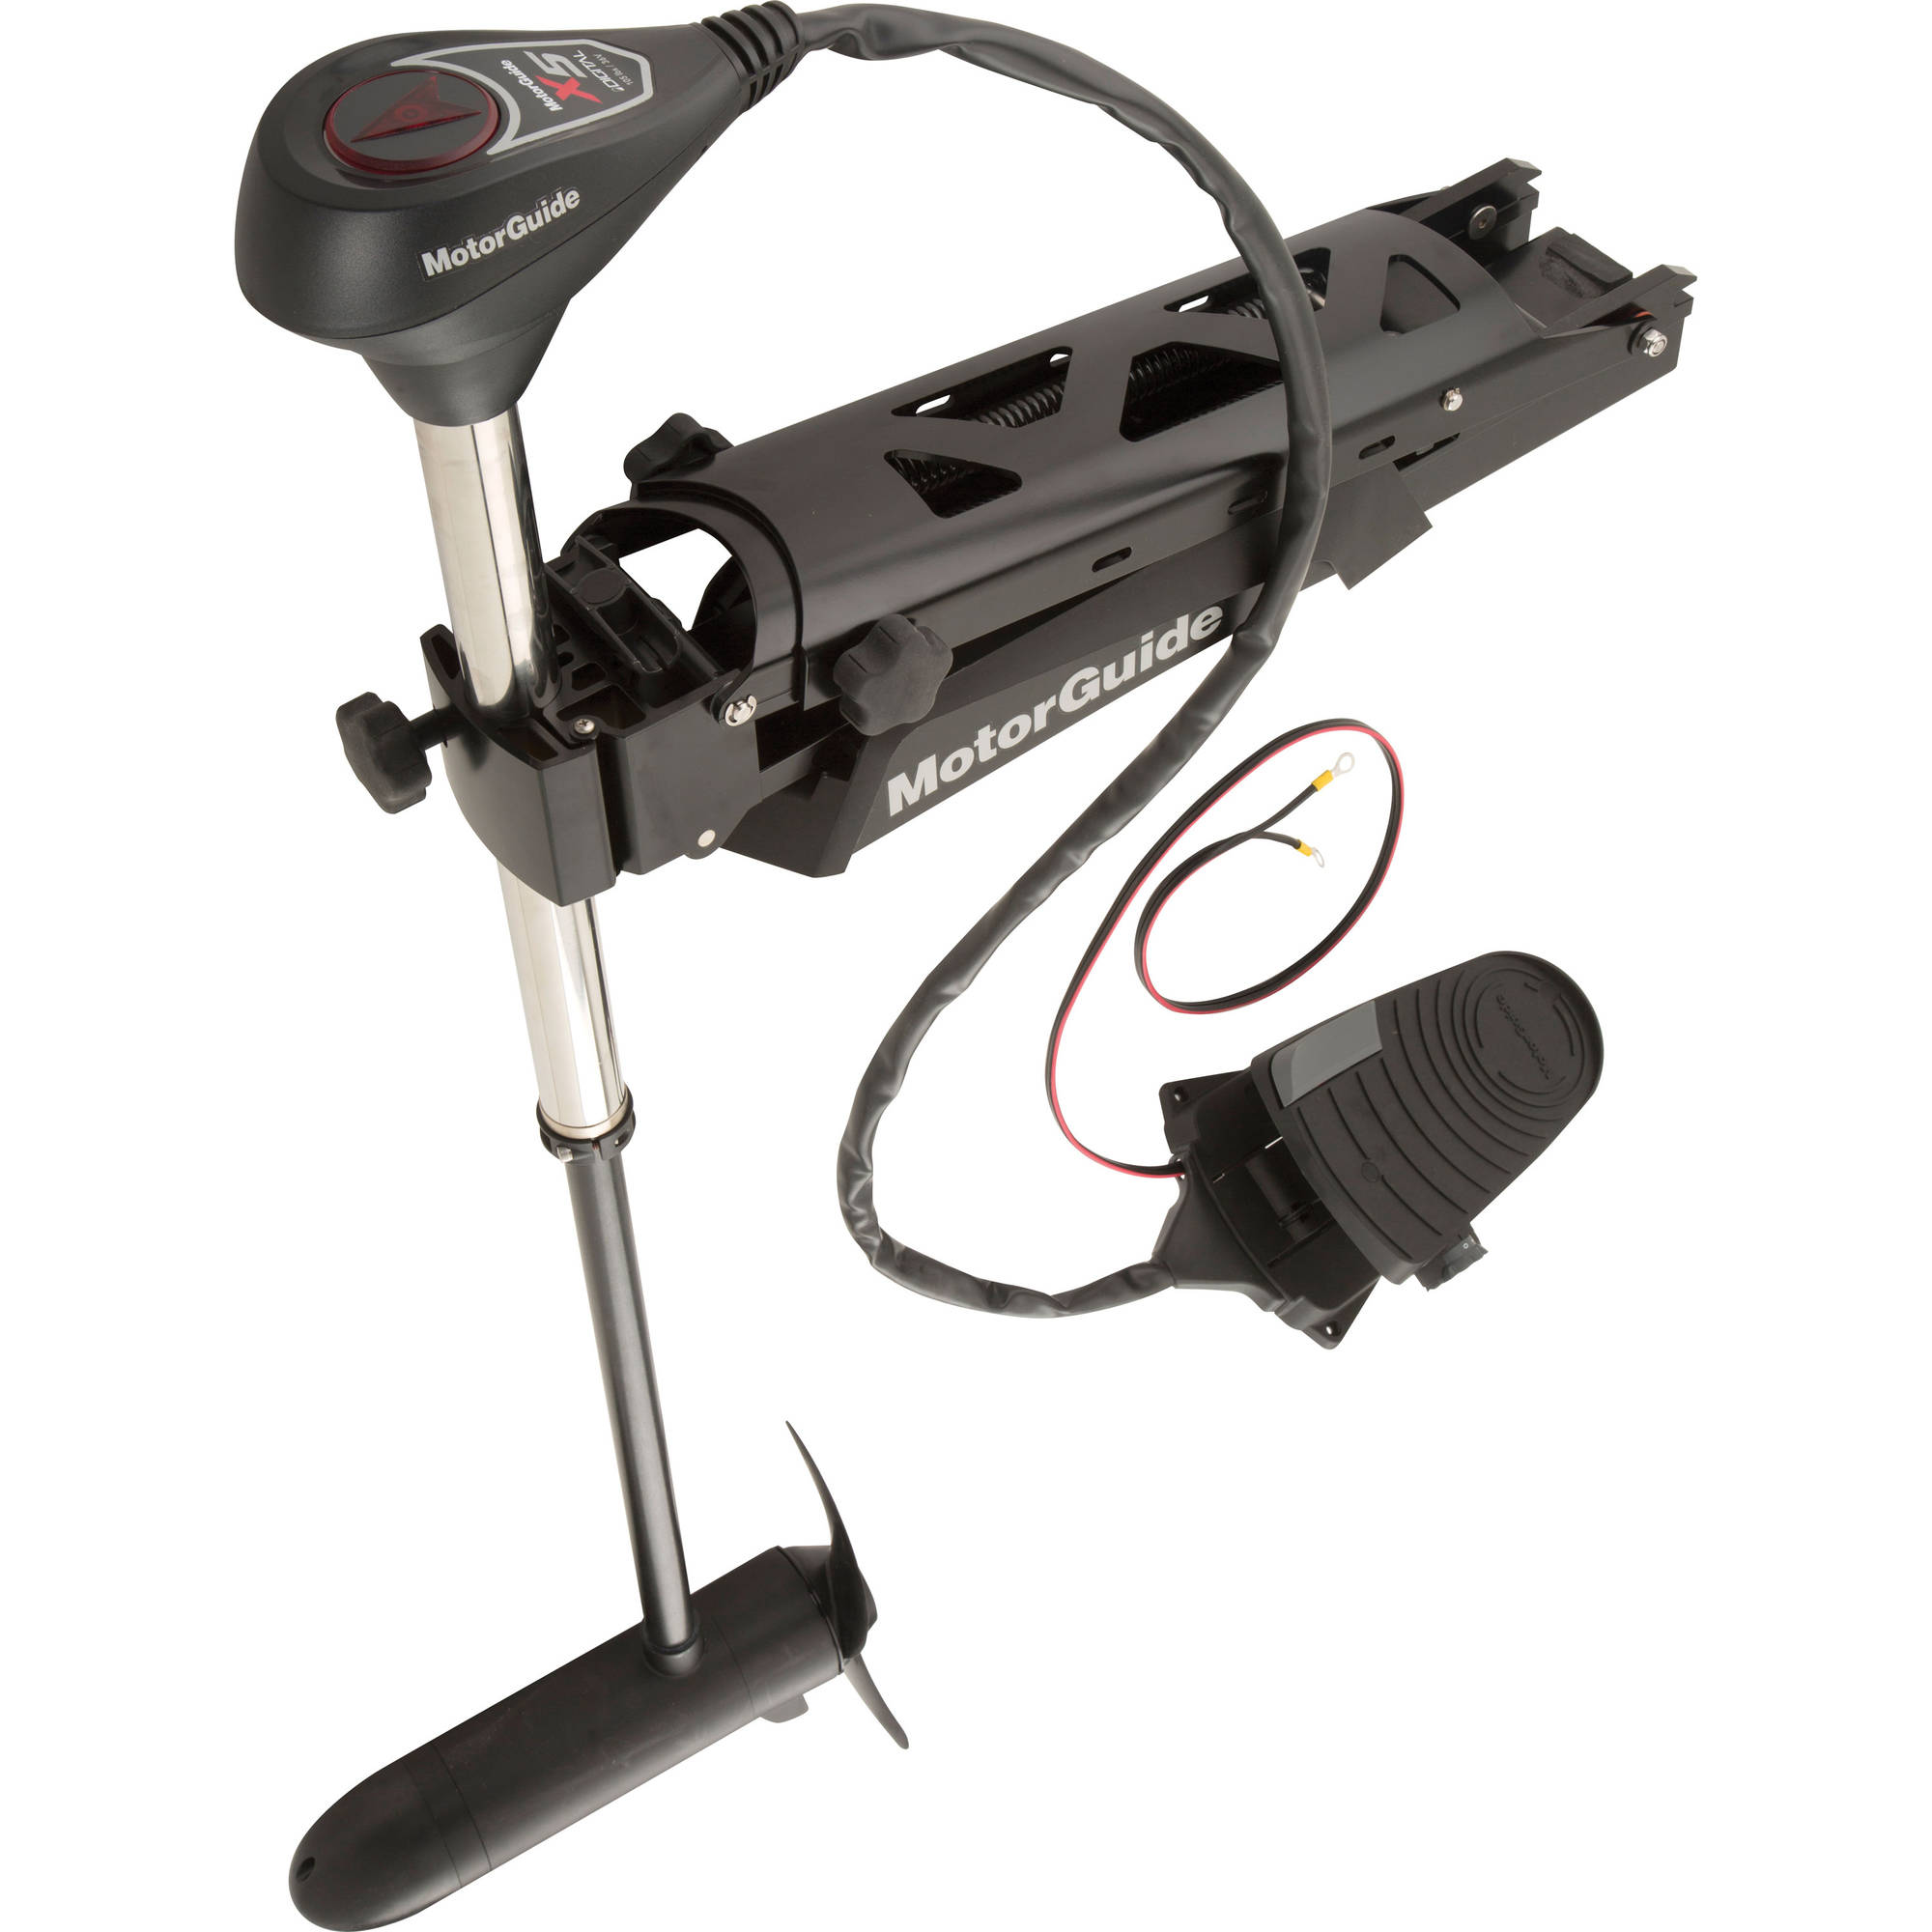 "MotorGuide X5 940500080 12V Foot-Control Bow-Mount Digital Variable Speed Freshwater Trolling Motor with Sonar 45"" Shaft, 55 lb Thrust"